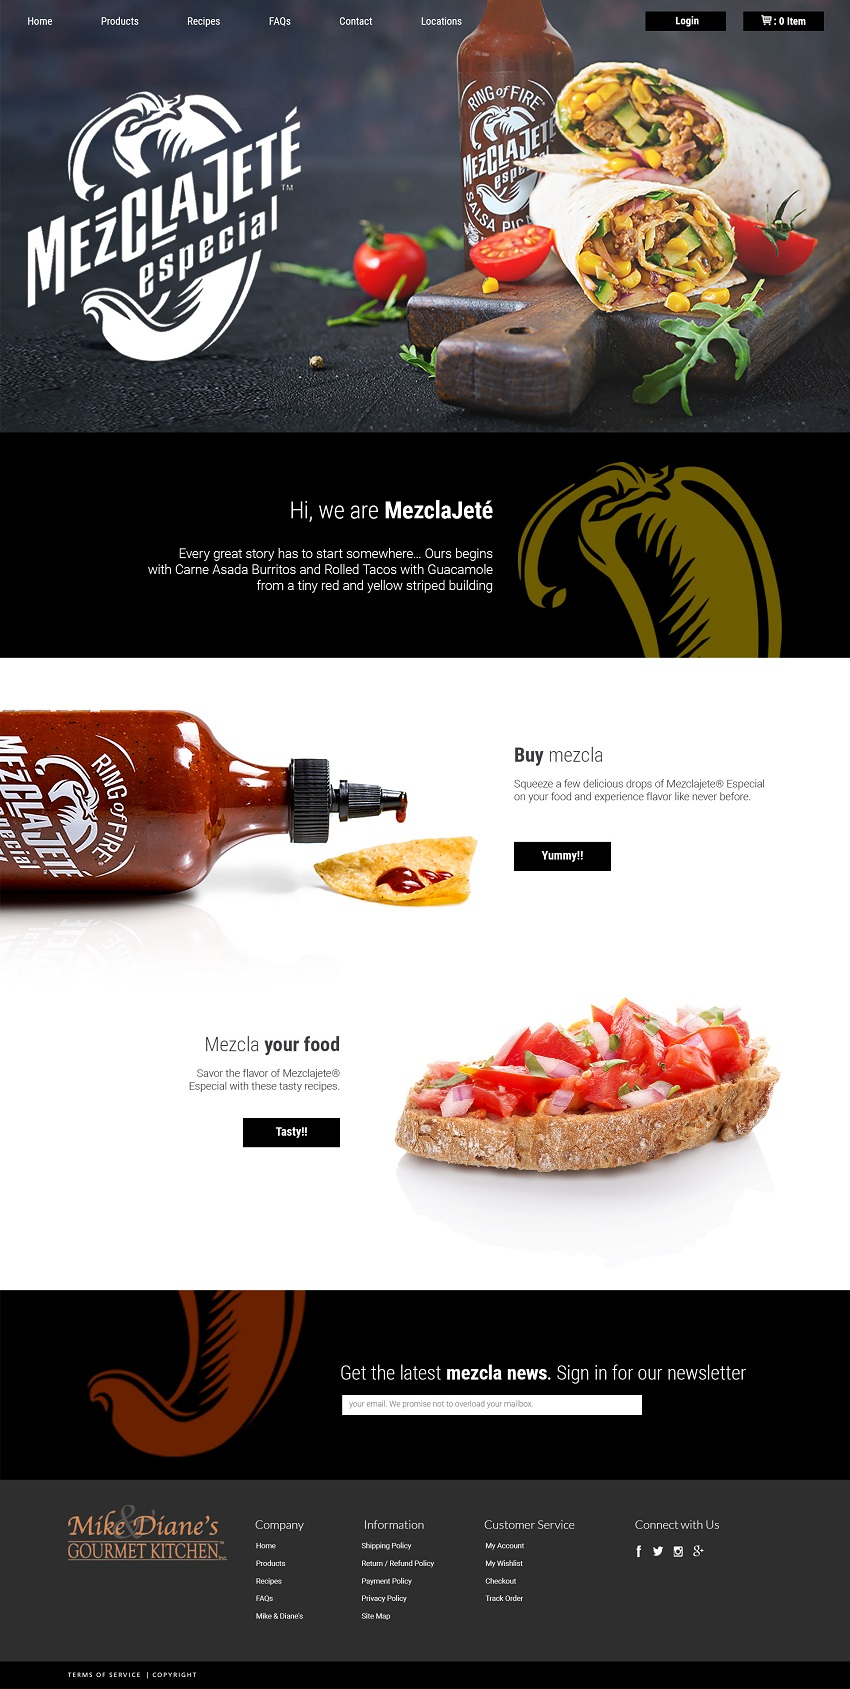 Image of Mezclajete Especial website design